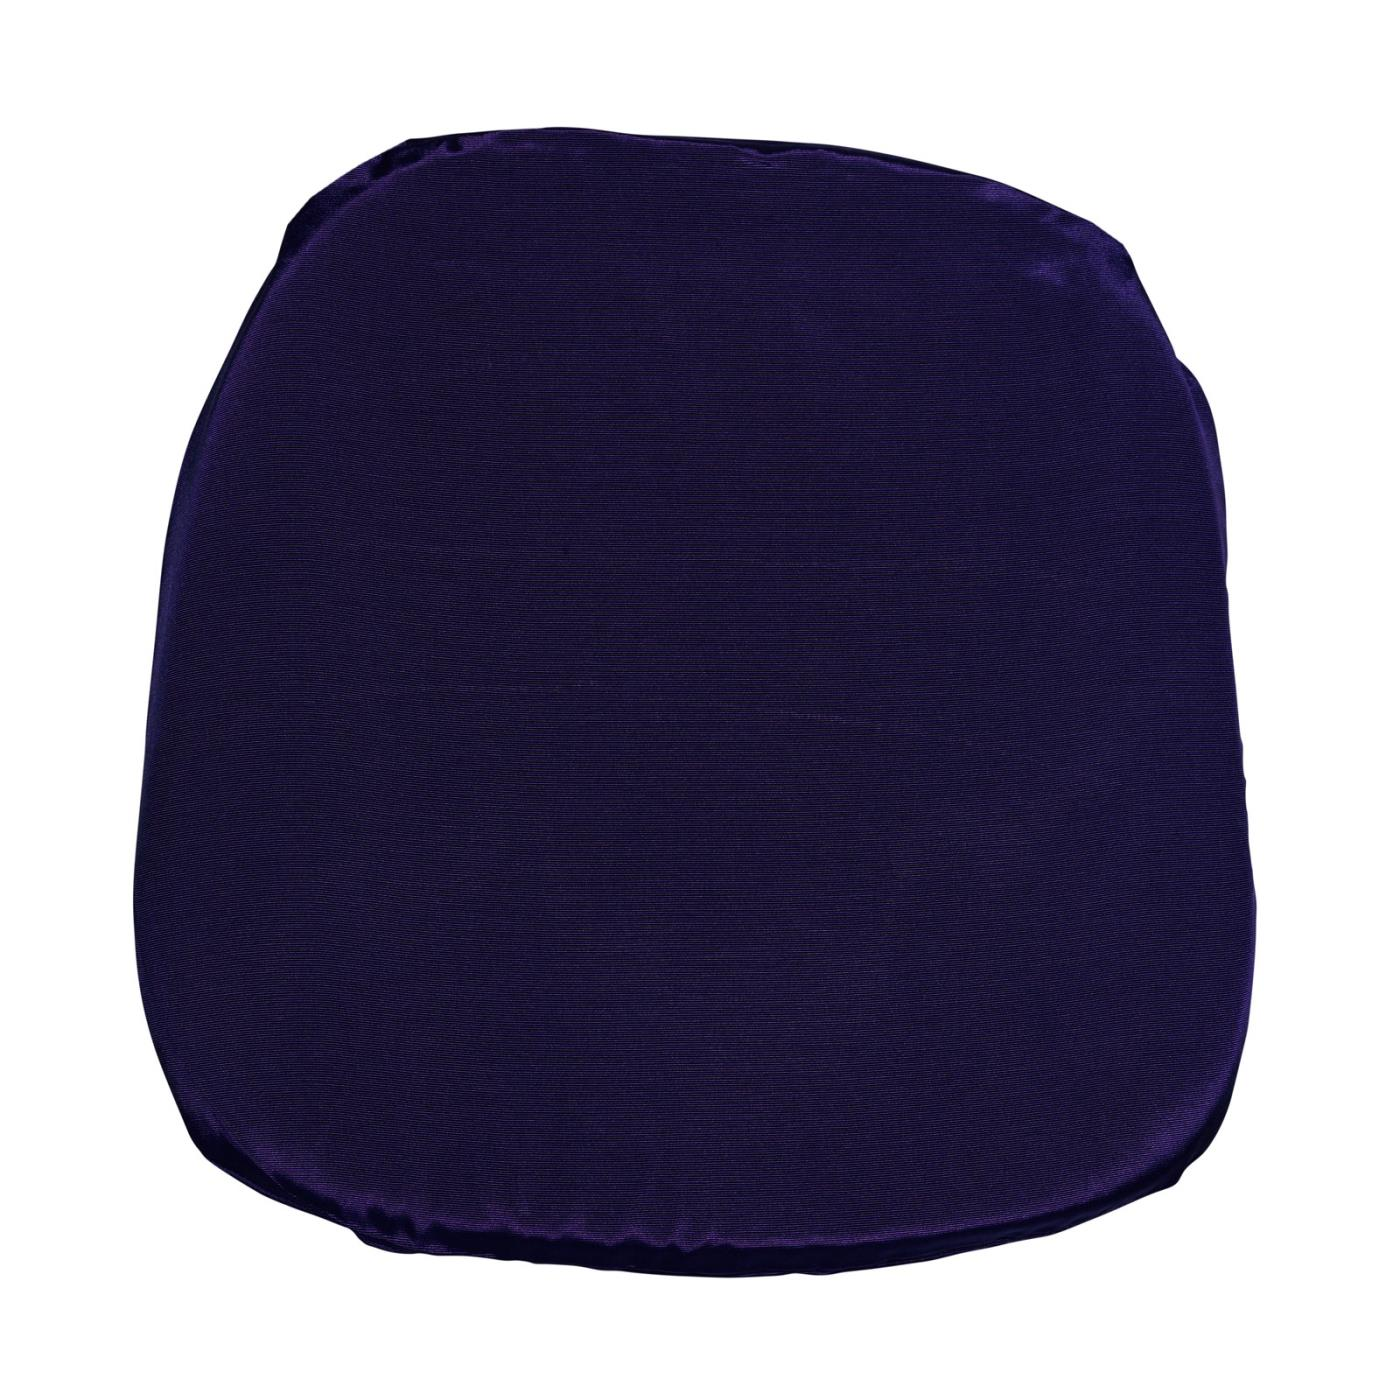 Bengaline Seat Cushion - Electric Blue